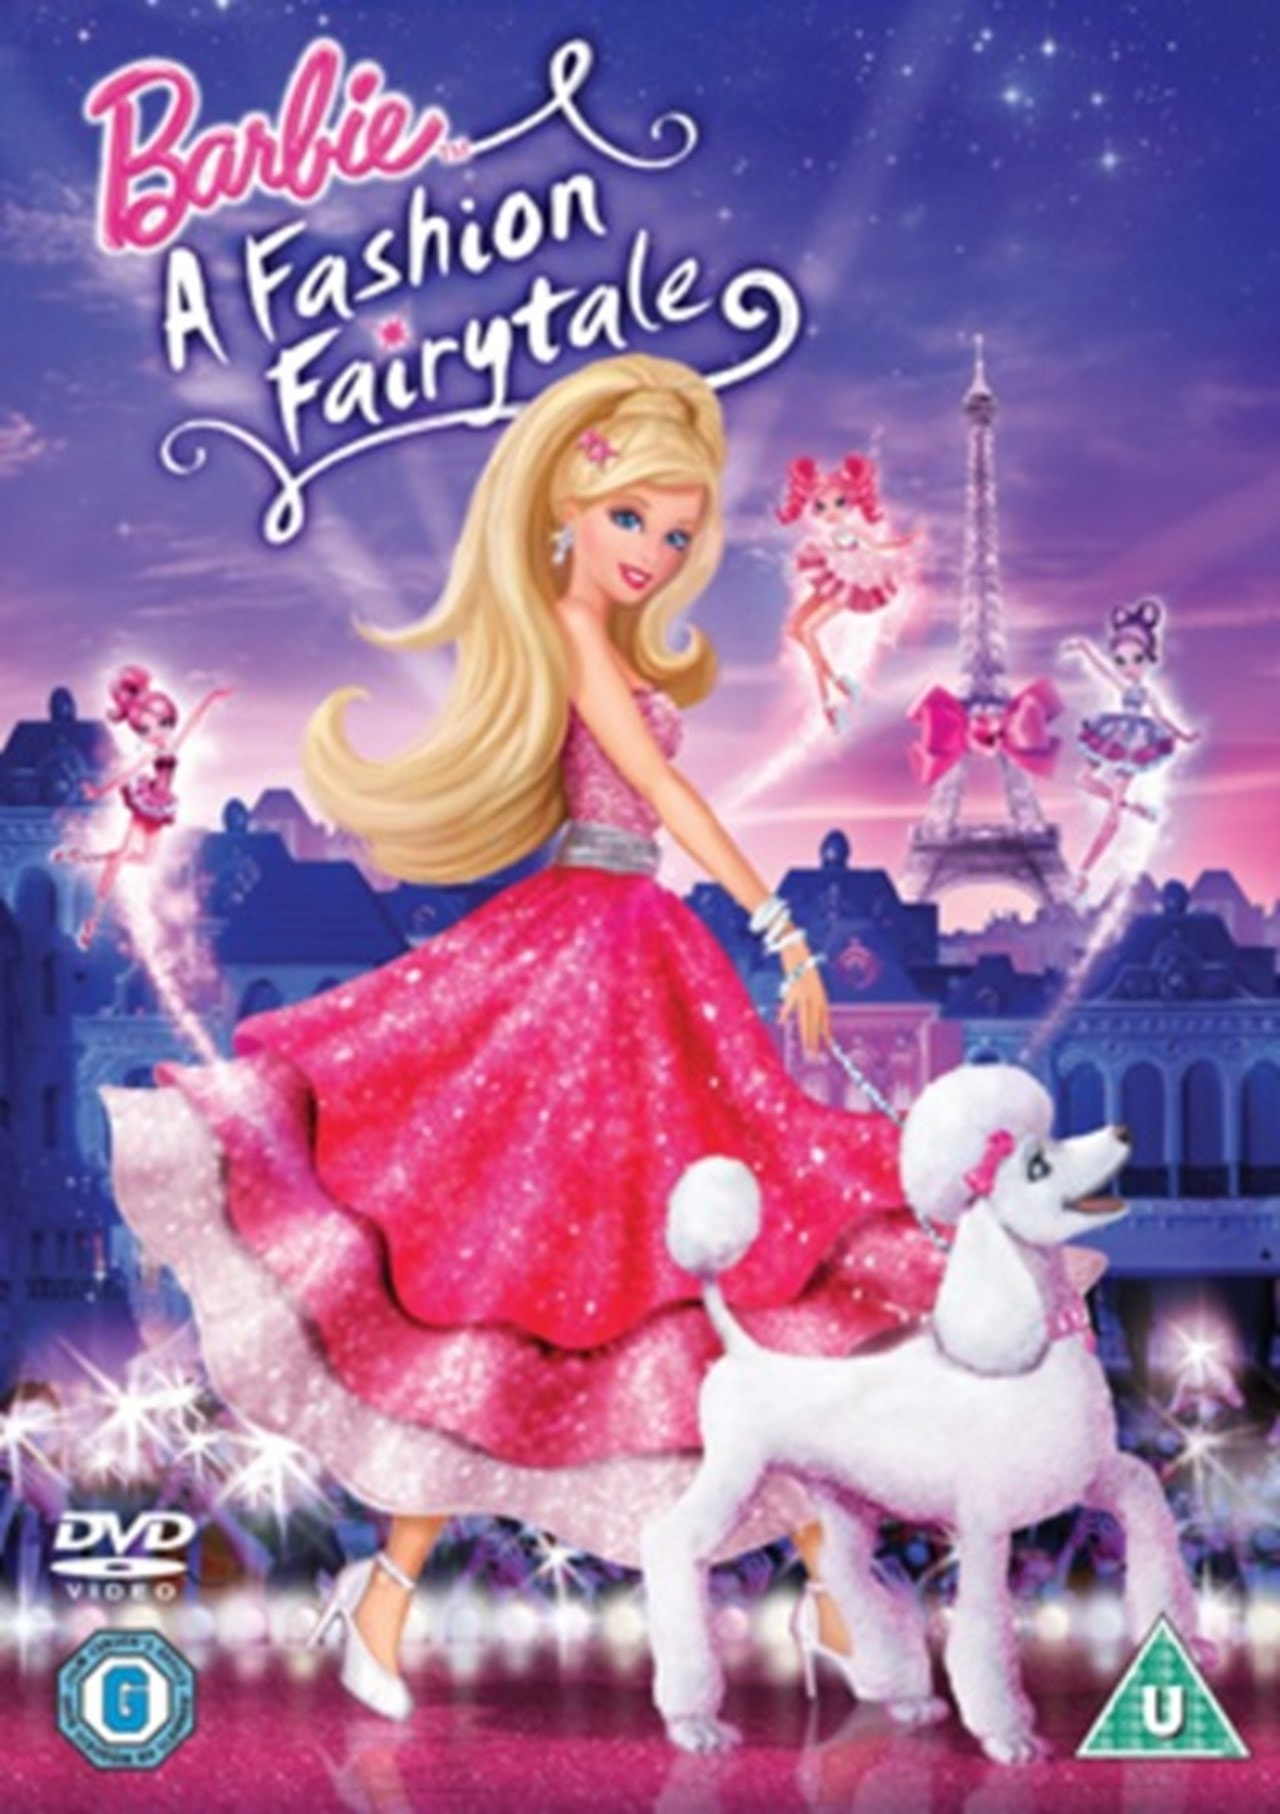 Barbie in a Fashion Fairytale - 1